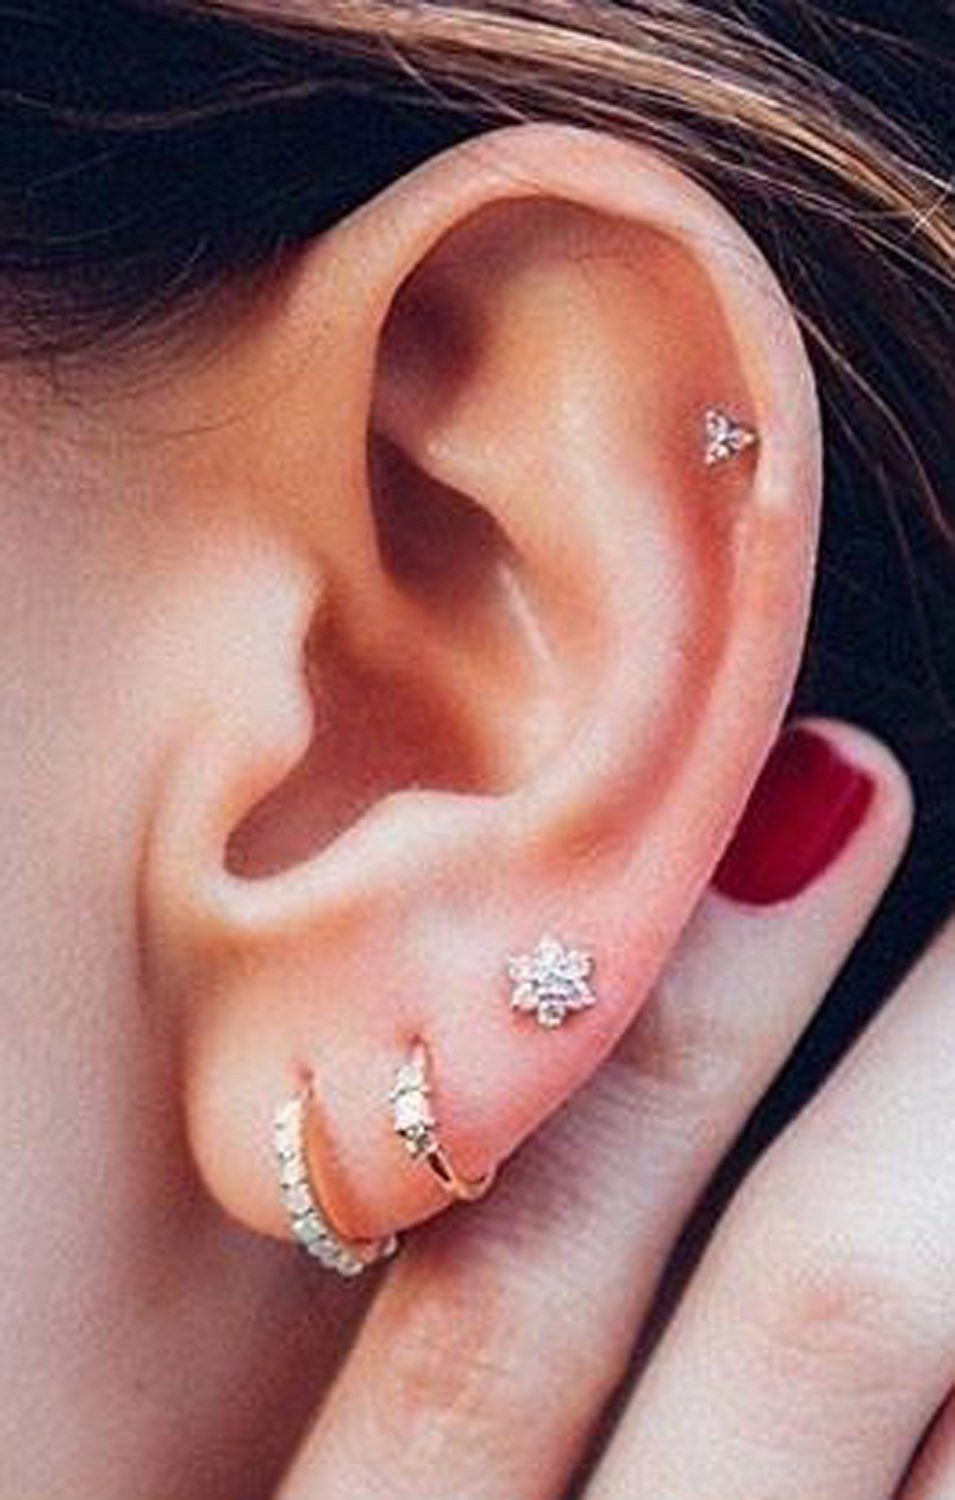 studex stud earrings and piercing after products care top ear